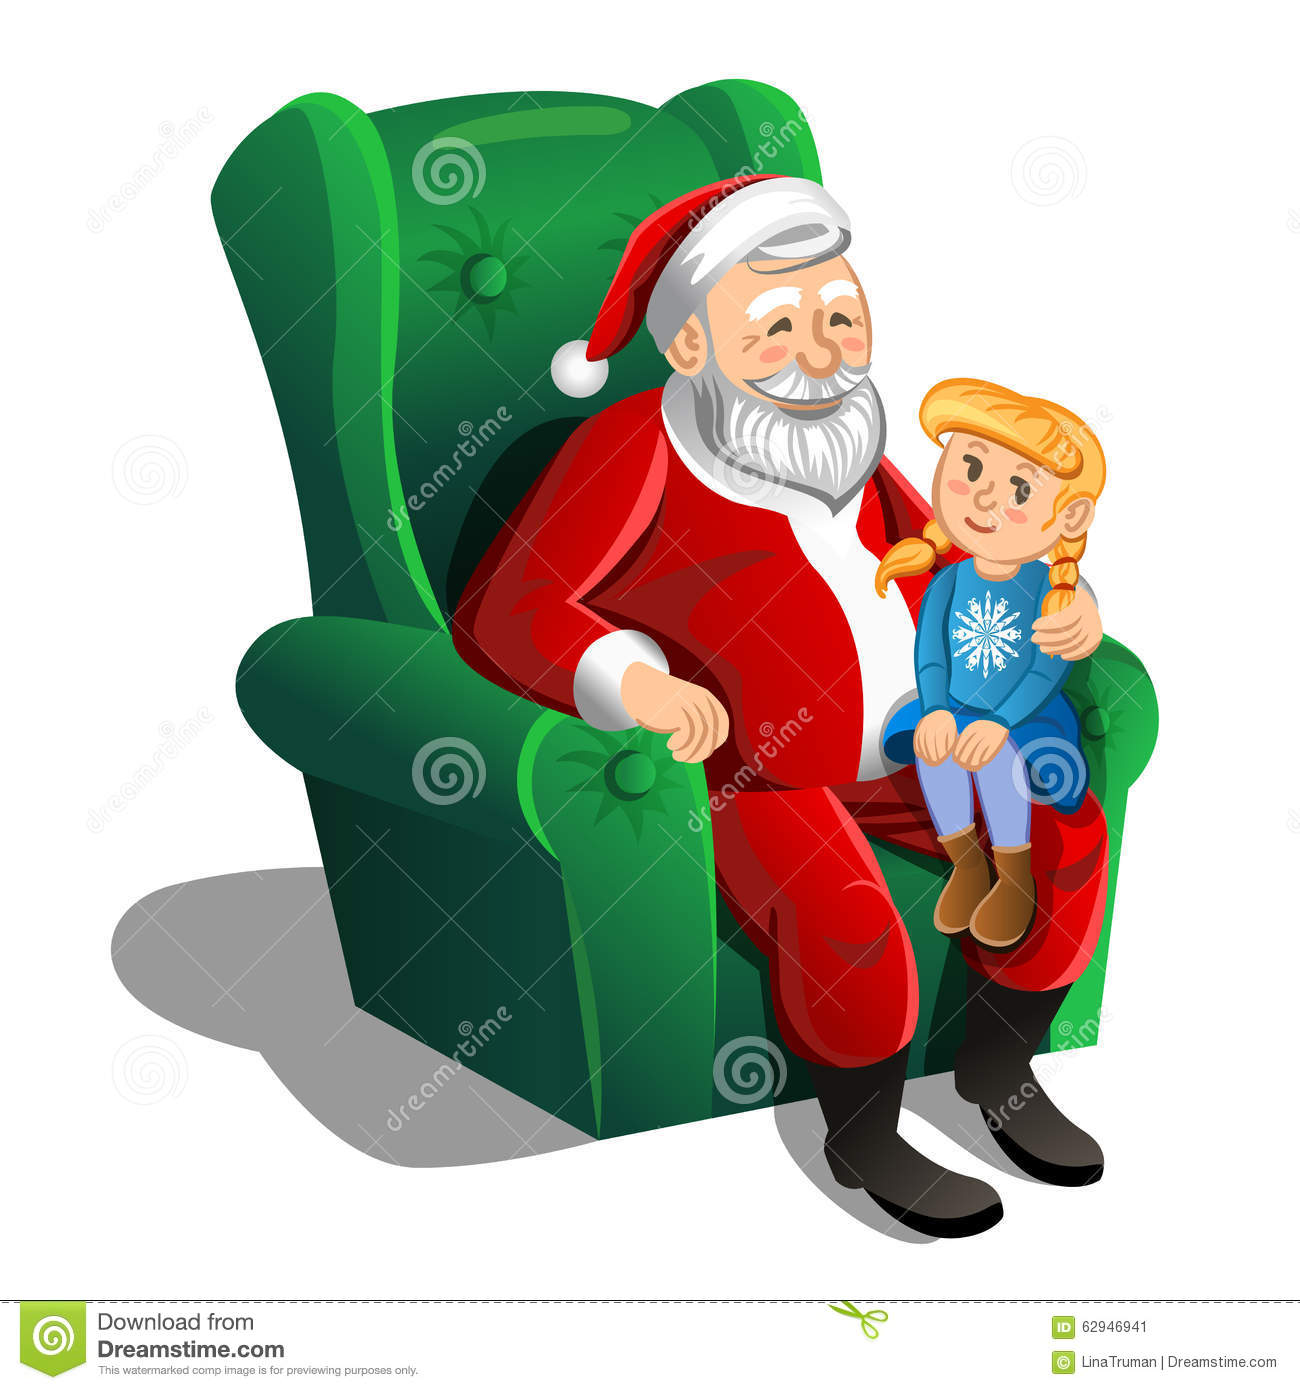 Santa Claus Sitting In Armchair With Little Girl Vector